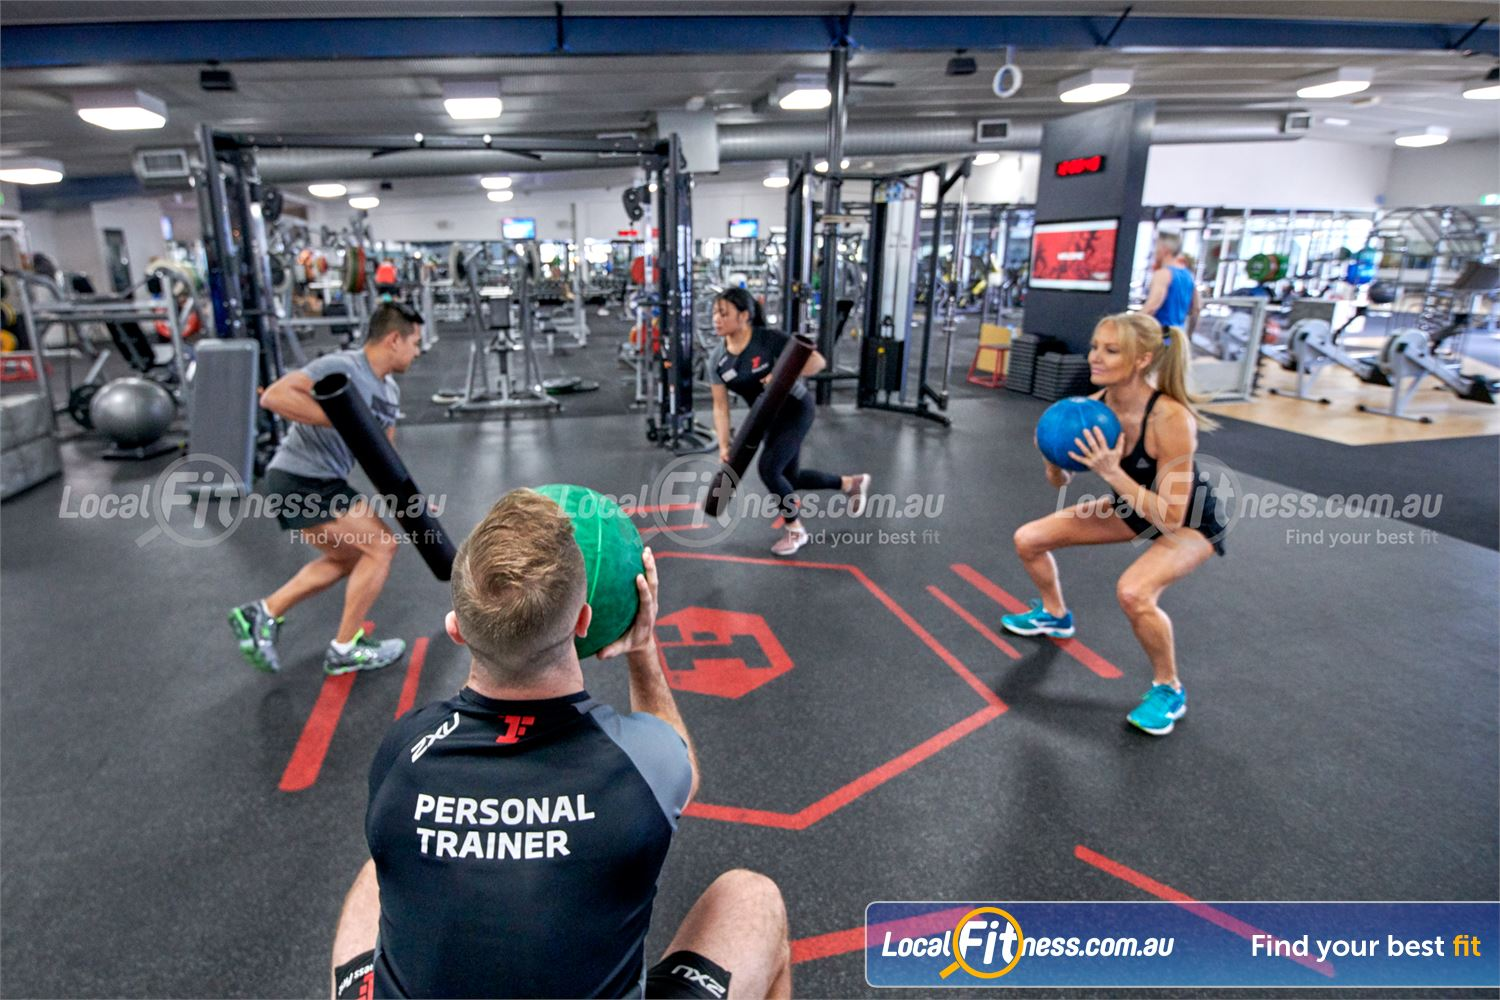 Fitness First Erina Fair Erina Welcome to the innovative Fitness First Erina Fair gym.